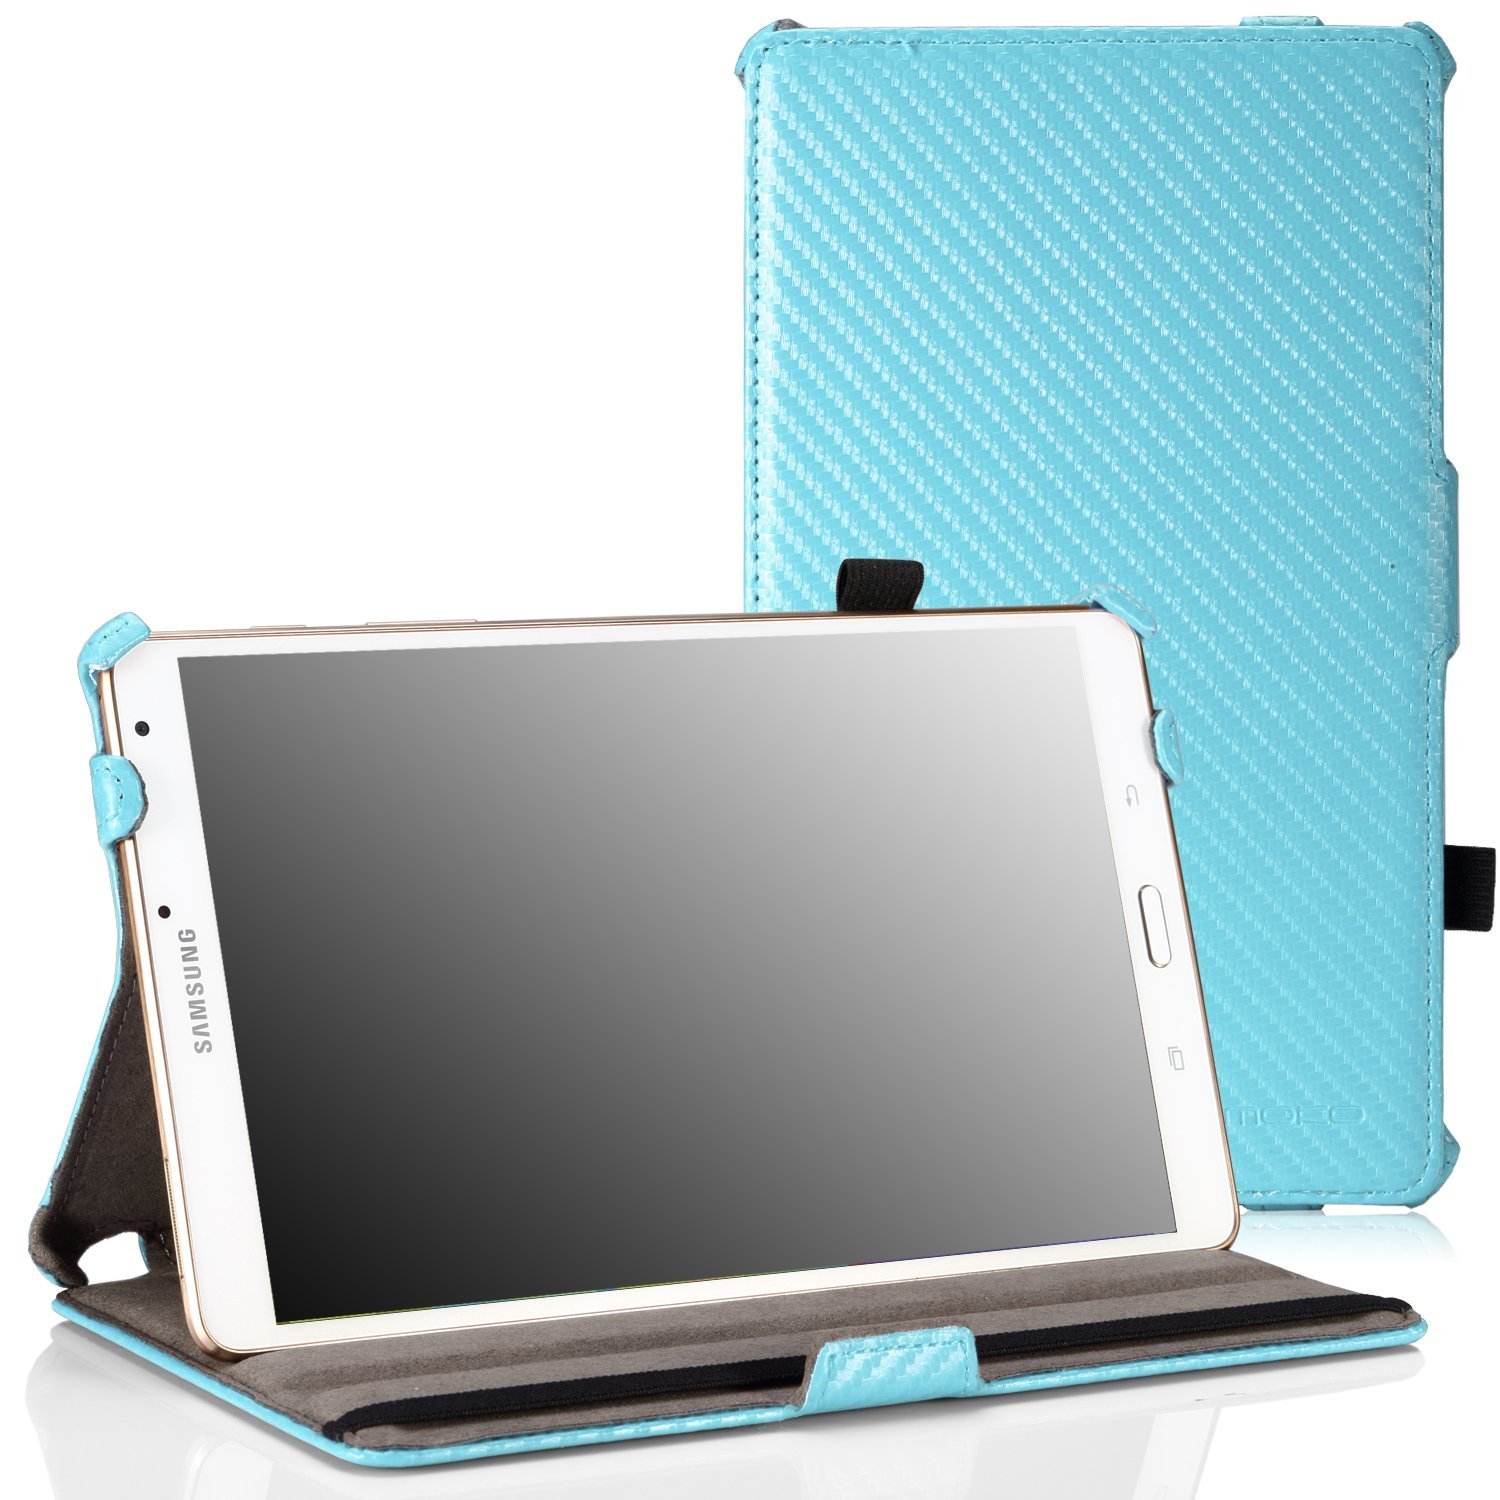 "MoKo Samsung Galaxy Tab S 8.4 Case - Slim-Fit Multi-angle Folio Cover Case with Auto Wake / Sleep and Stylus Pen Loop for Samsung Galaxy Tab S 8.4"" Tablet,Carbon Fiber Light BLUE (Not Fit Tab Pro 8.4)"